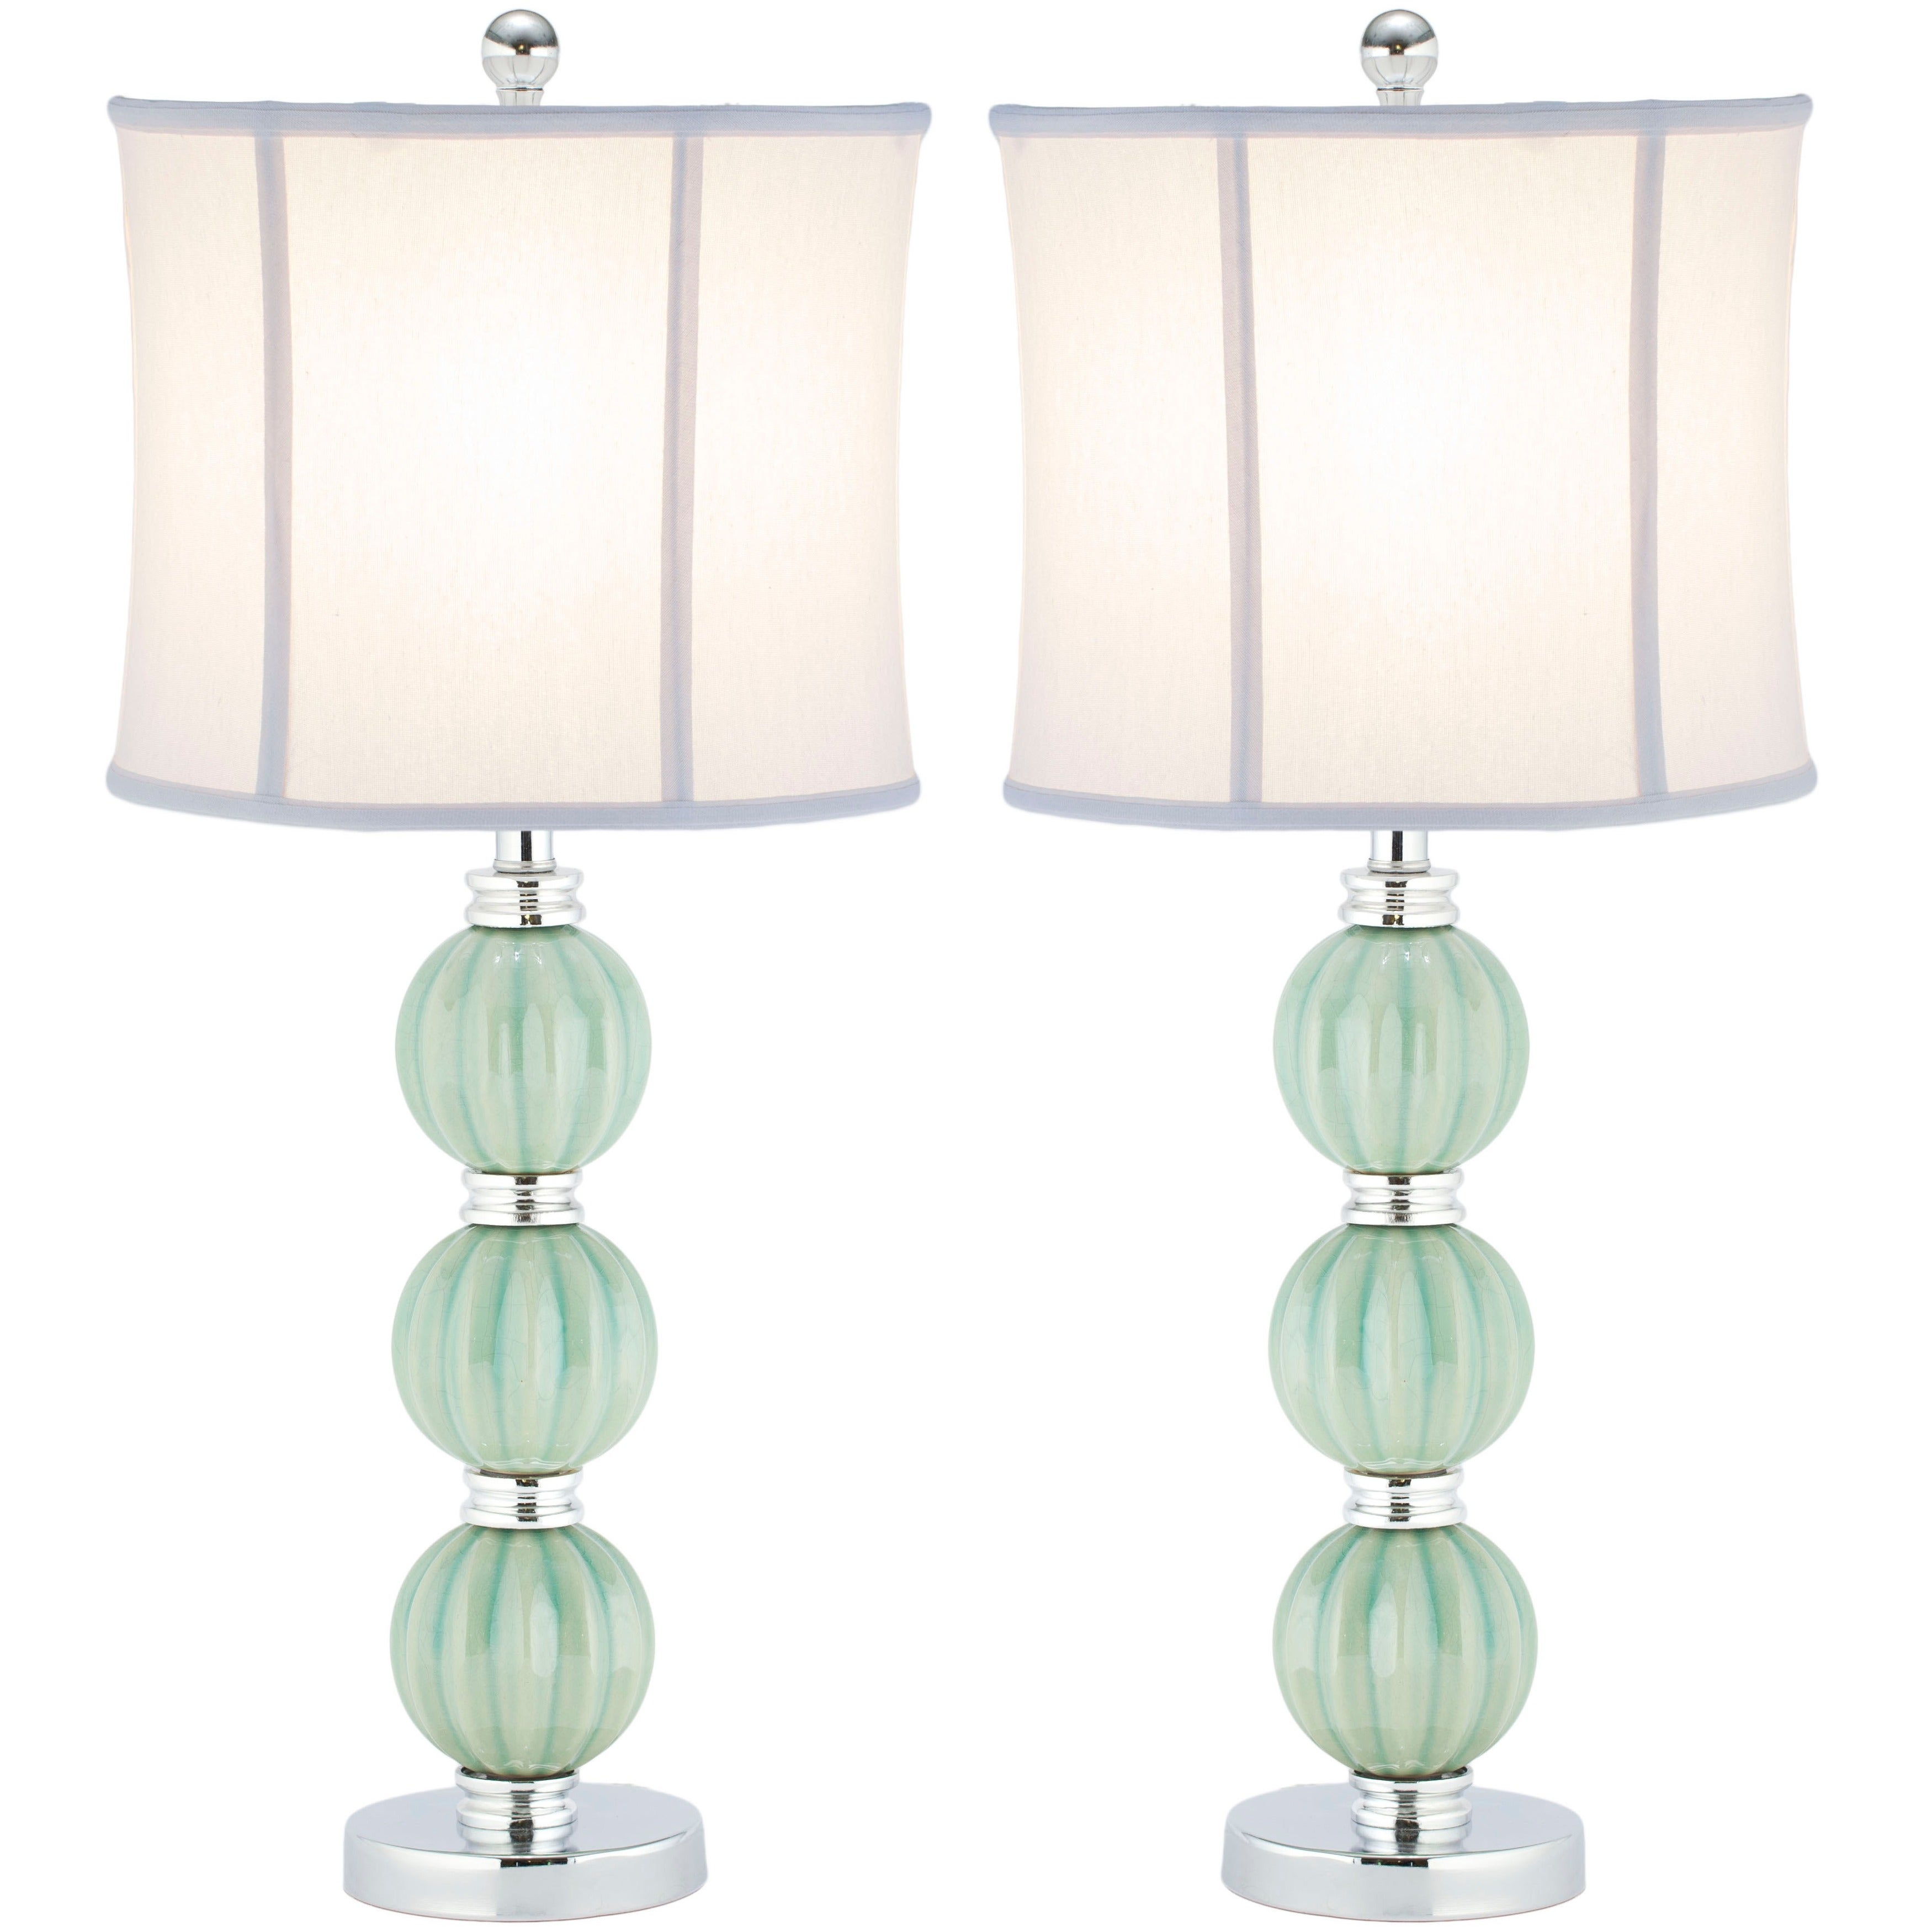 retro contemporary living mid flooring mod chrome glass for room modern globe lamp full hanging danish floor lighting sale sconces wall sconce with bathroom of light outdoor style green atomic modernist lamps midcentury fixtures century size vintage table lume